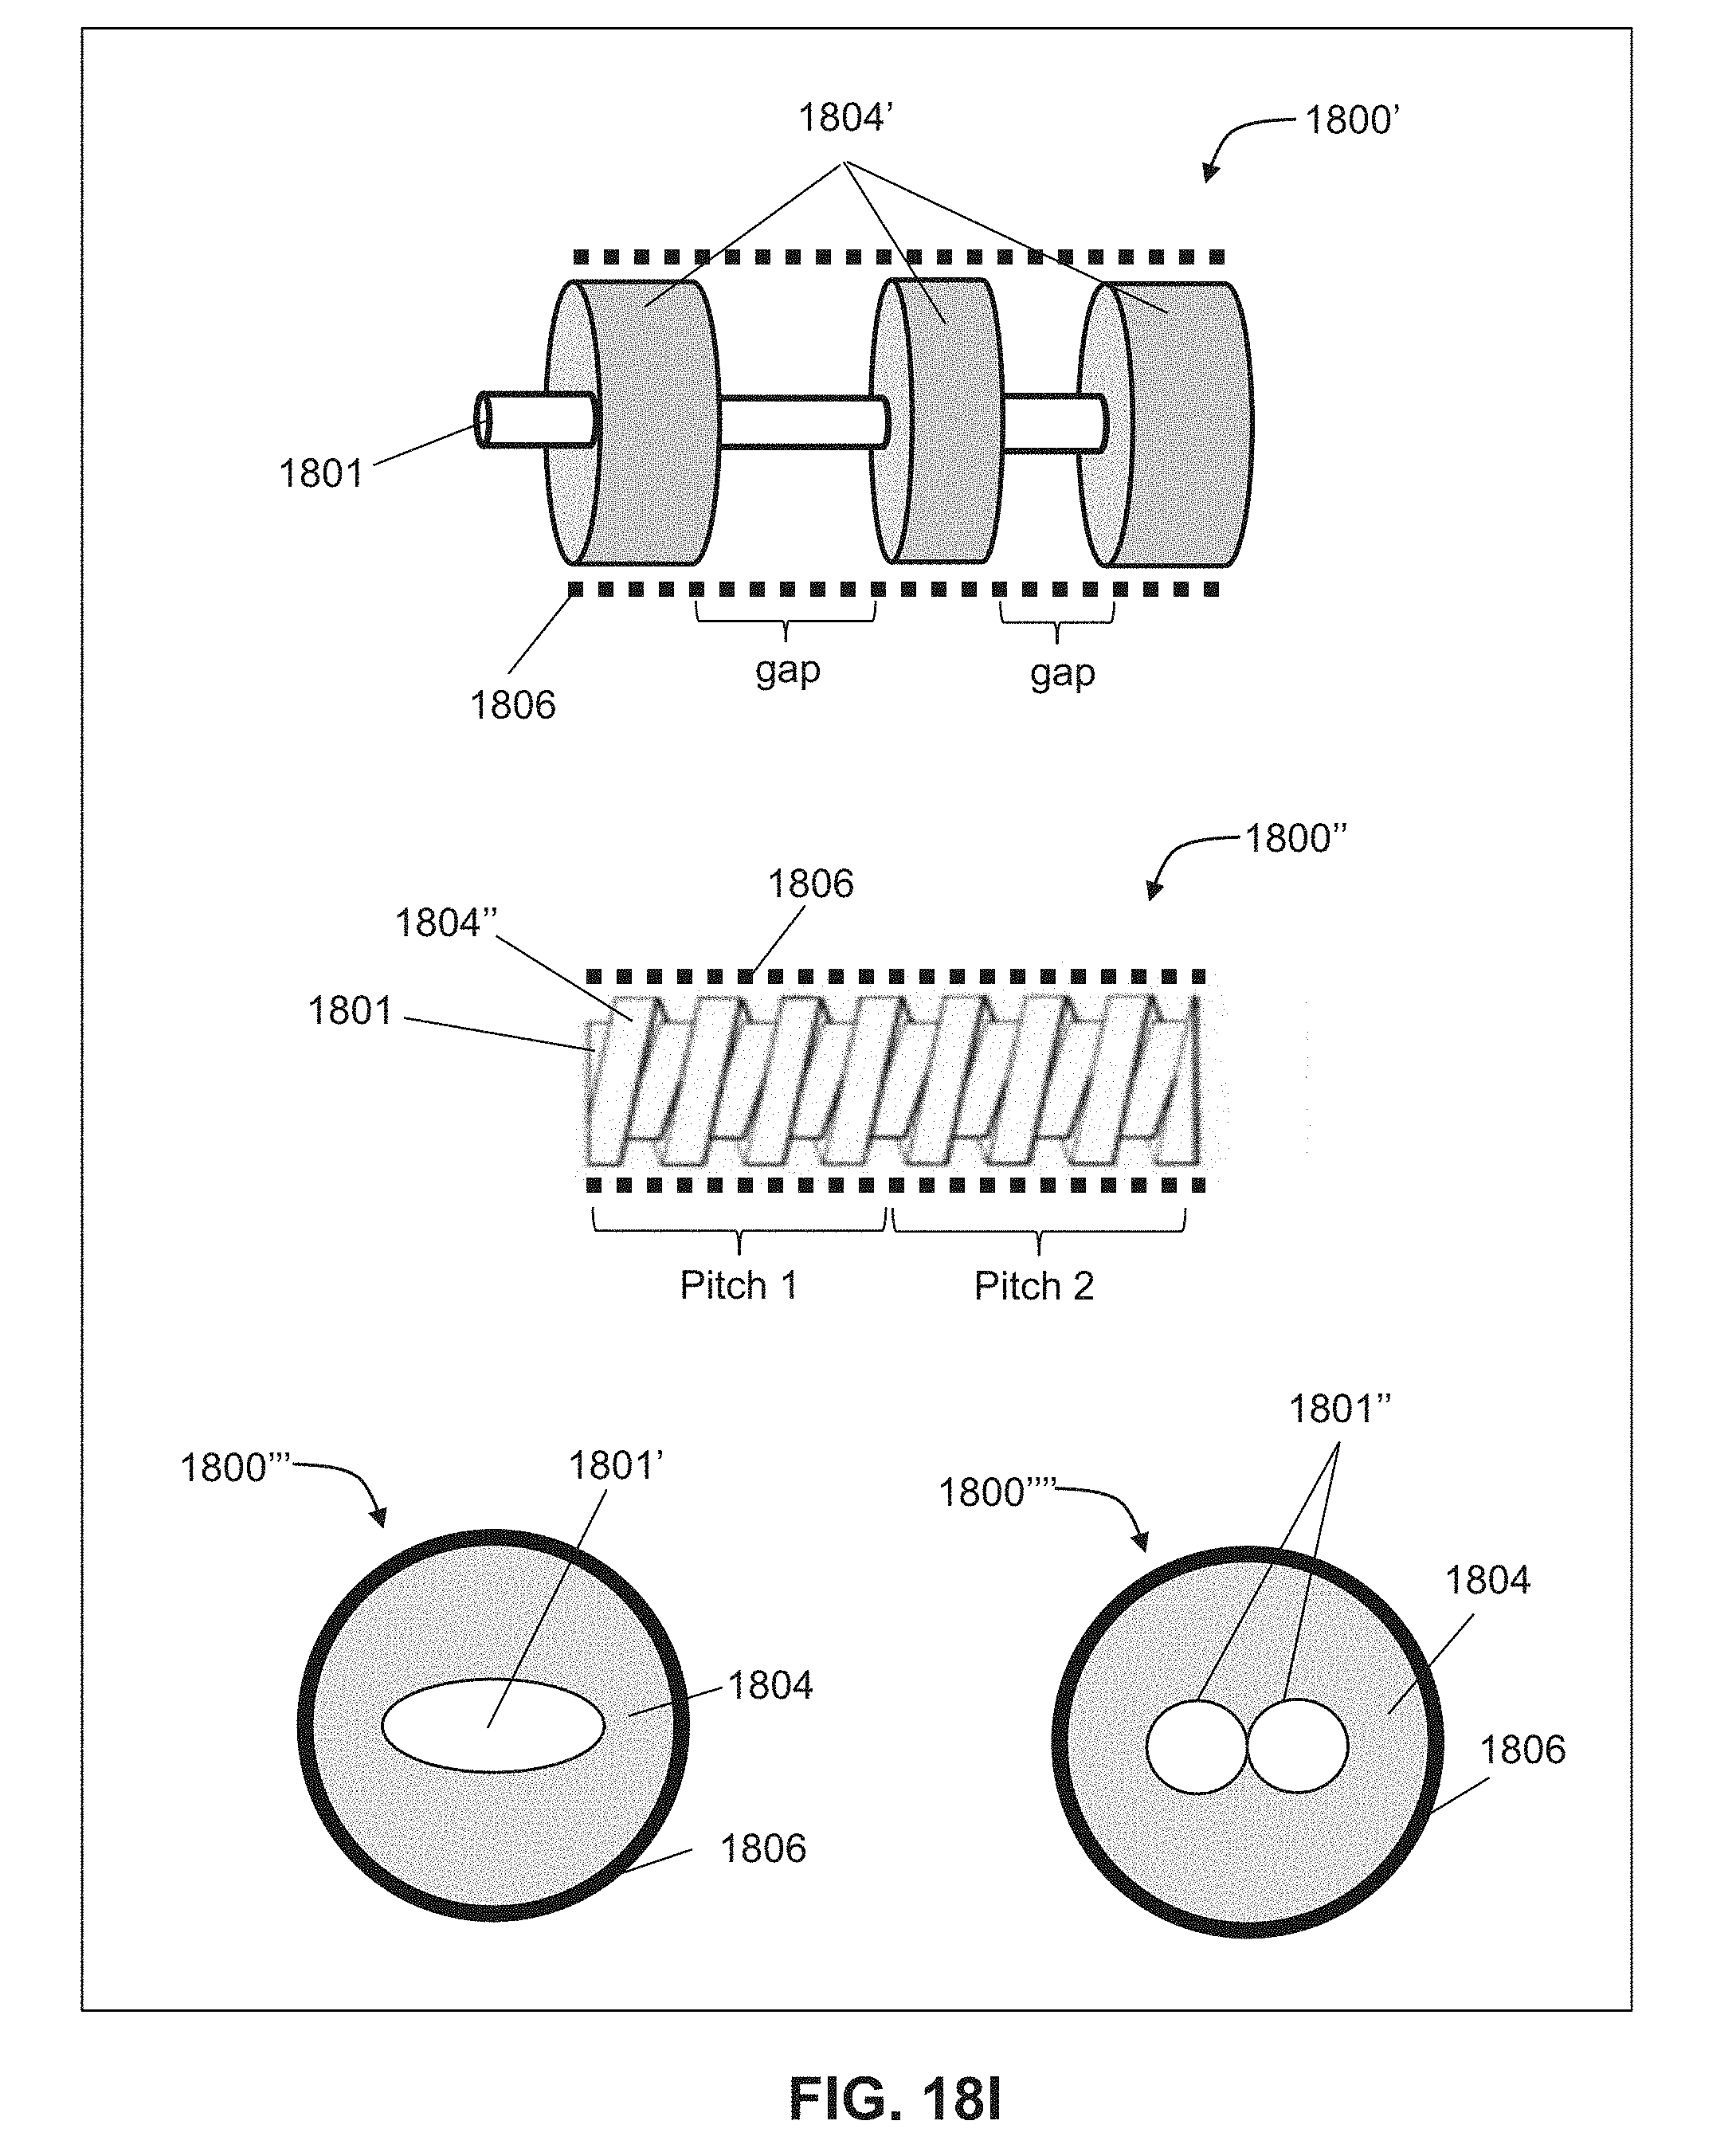 us9947982b2 dielectric transmission medium connector and methods Xfinity X1 Review us9947982b2 dielectric transmission medium connector and methods for use therewith patents